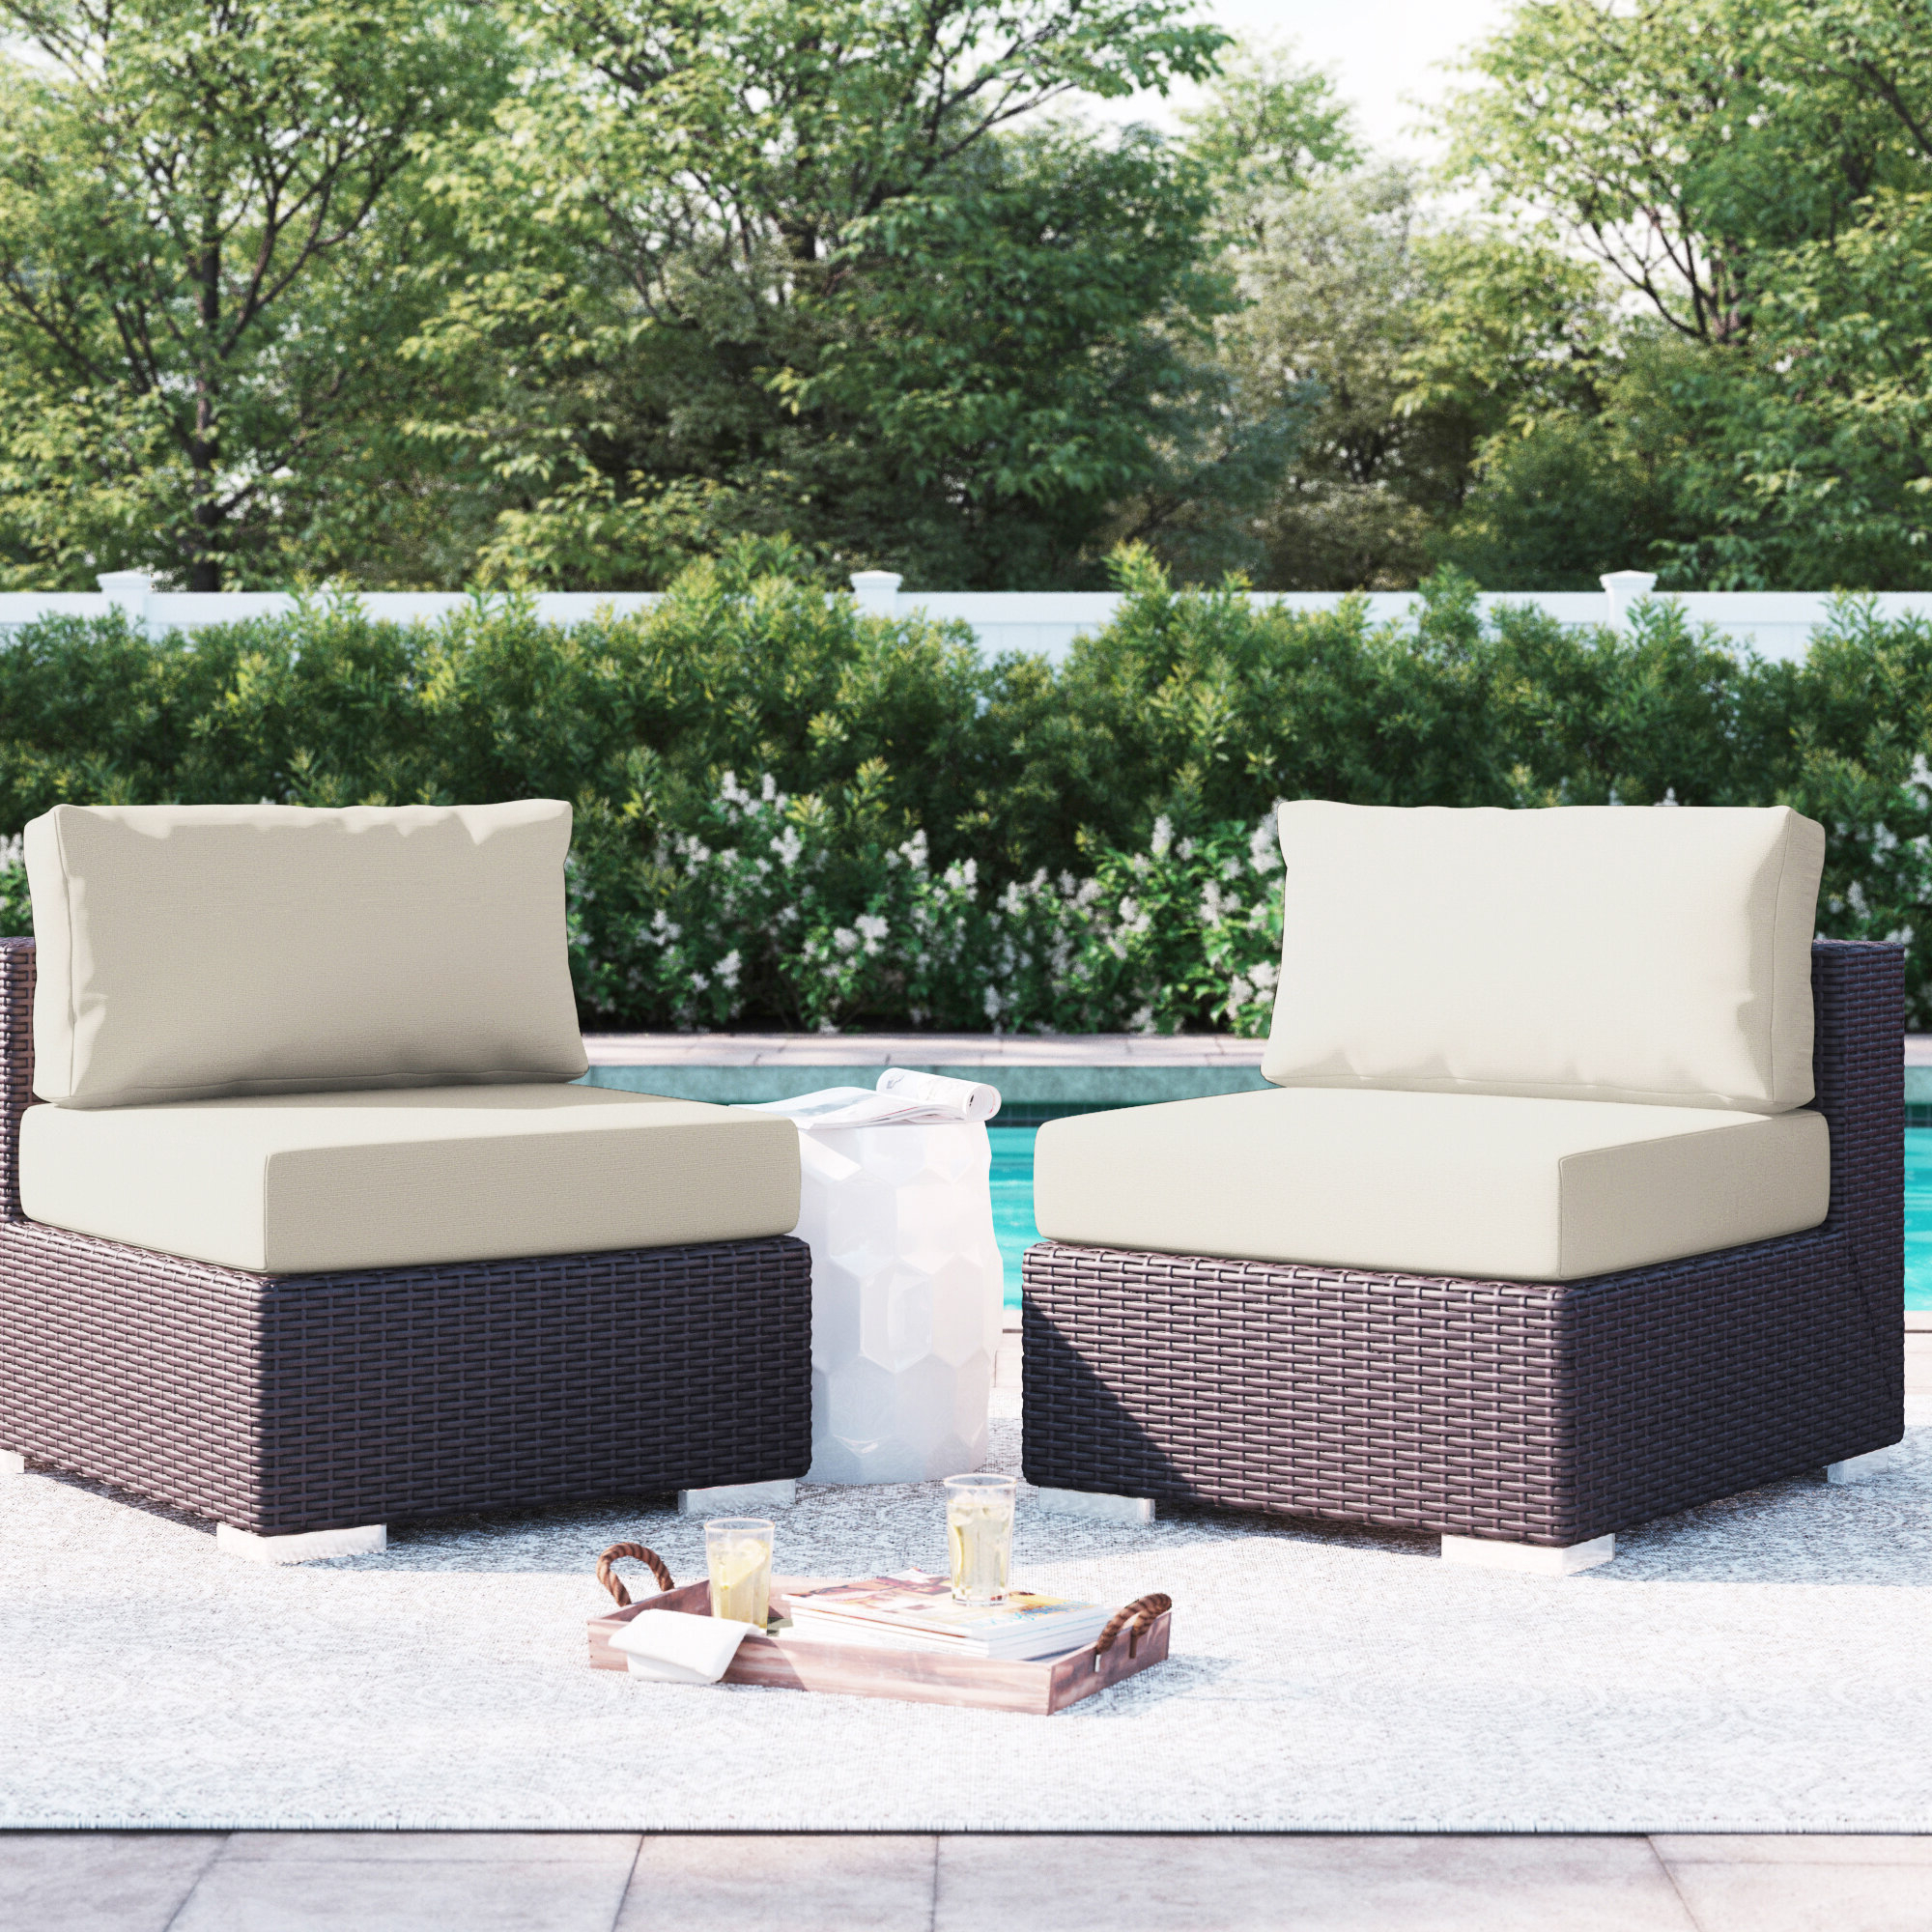 Brentwood Patio Sofas With Cushions With Current Brentwood Armless Chair With Cushions (View 6 of 18)